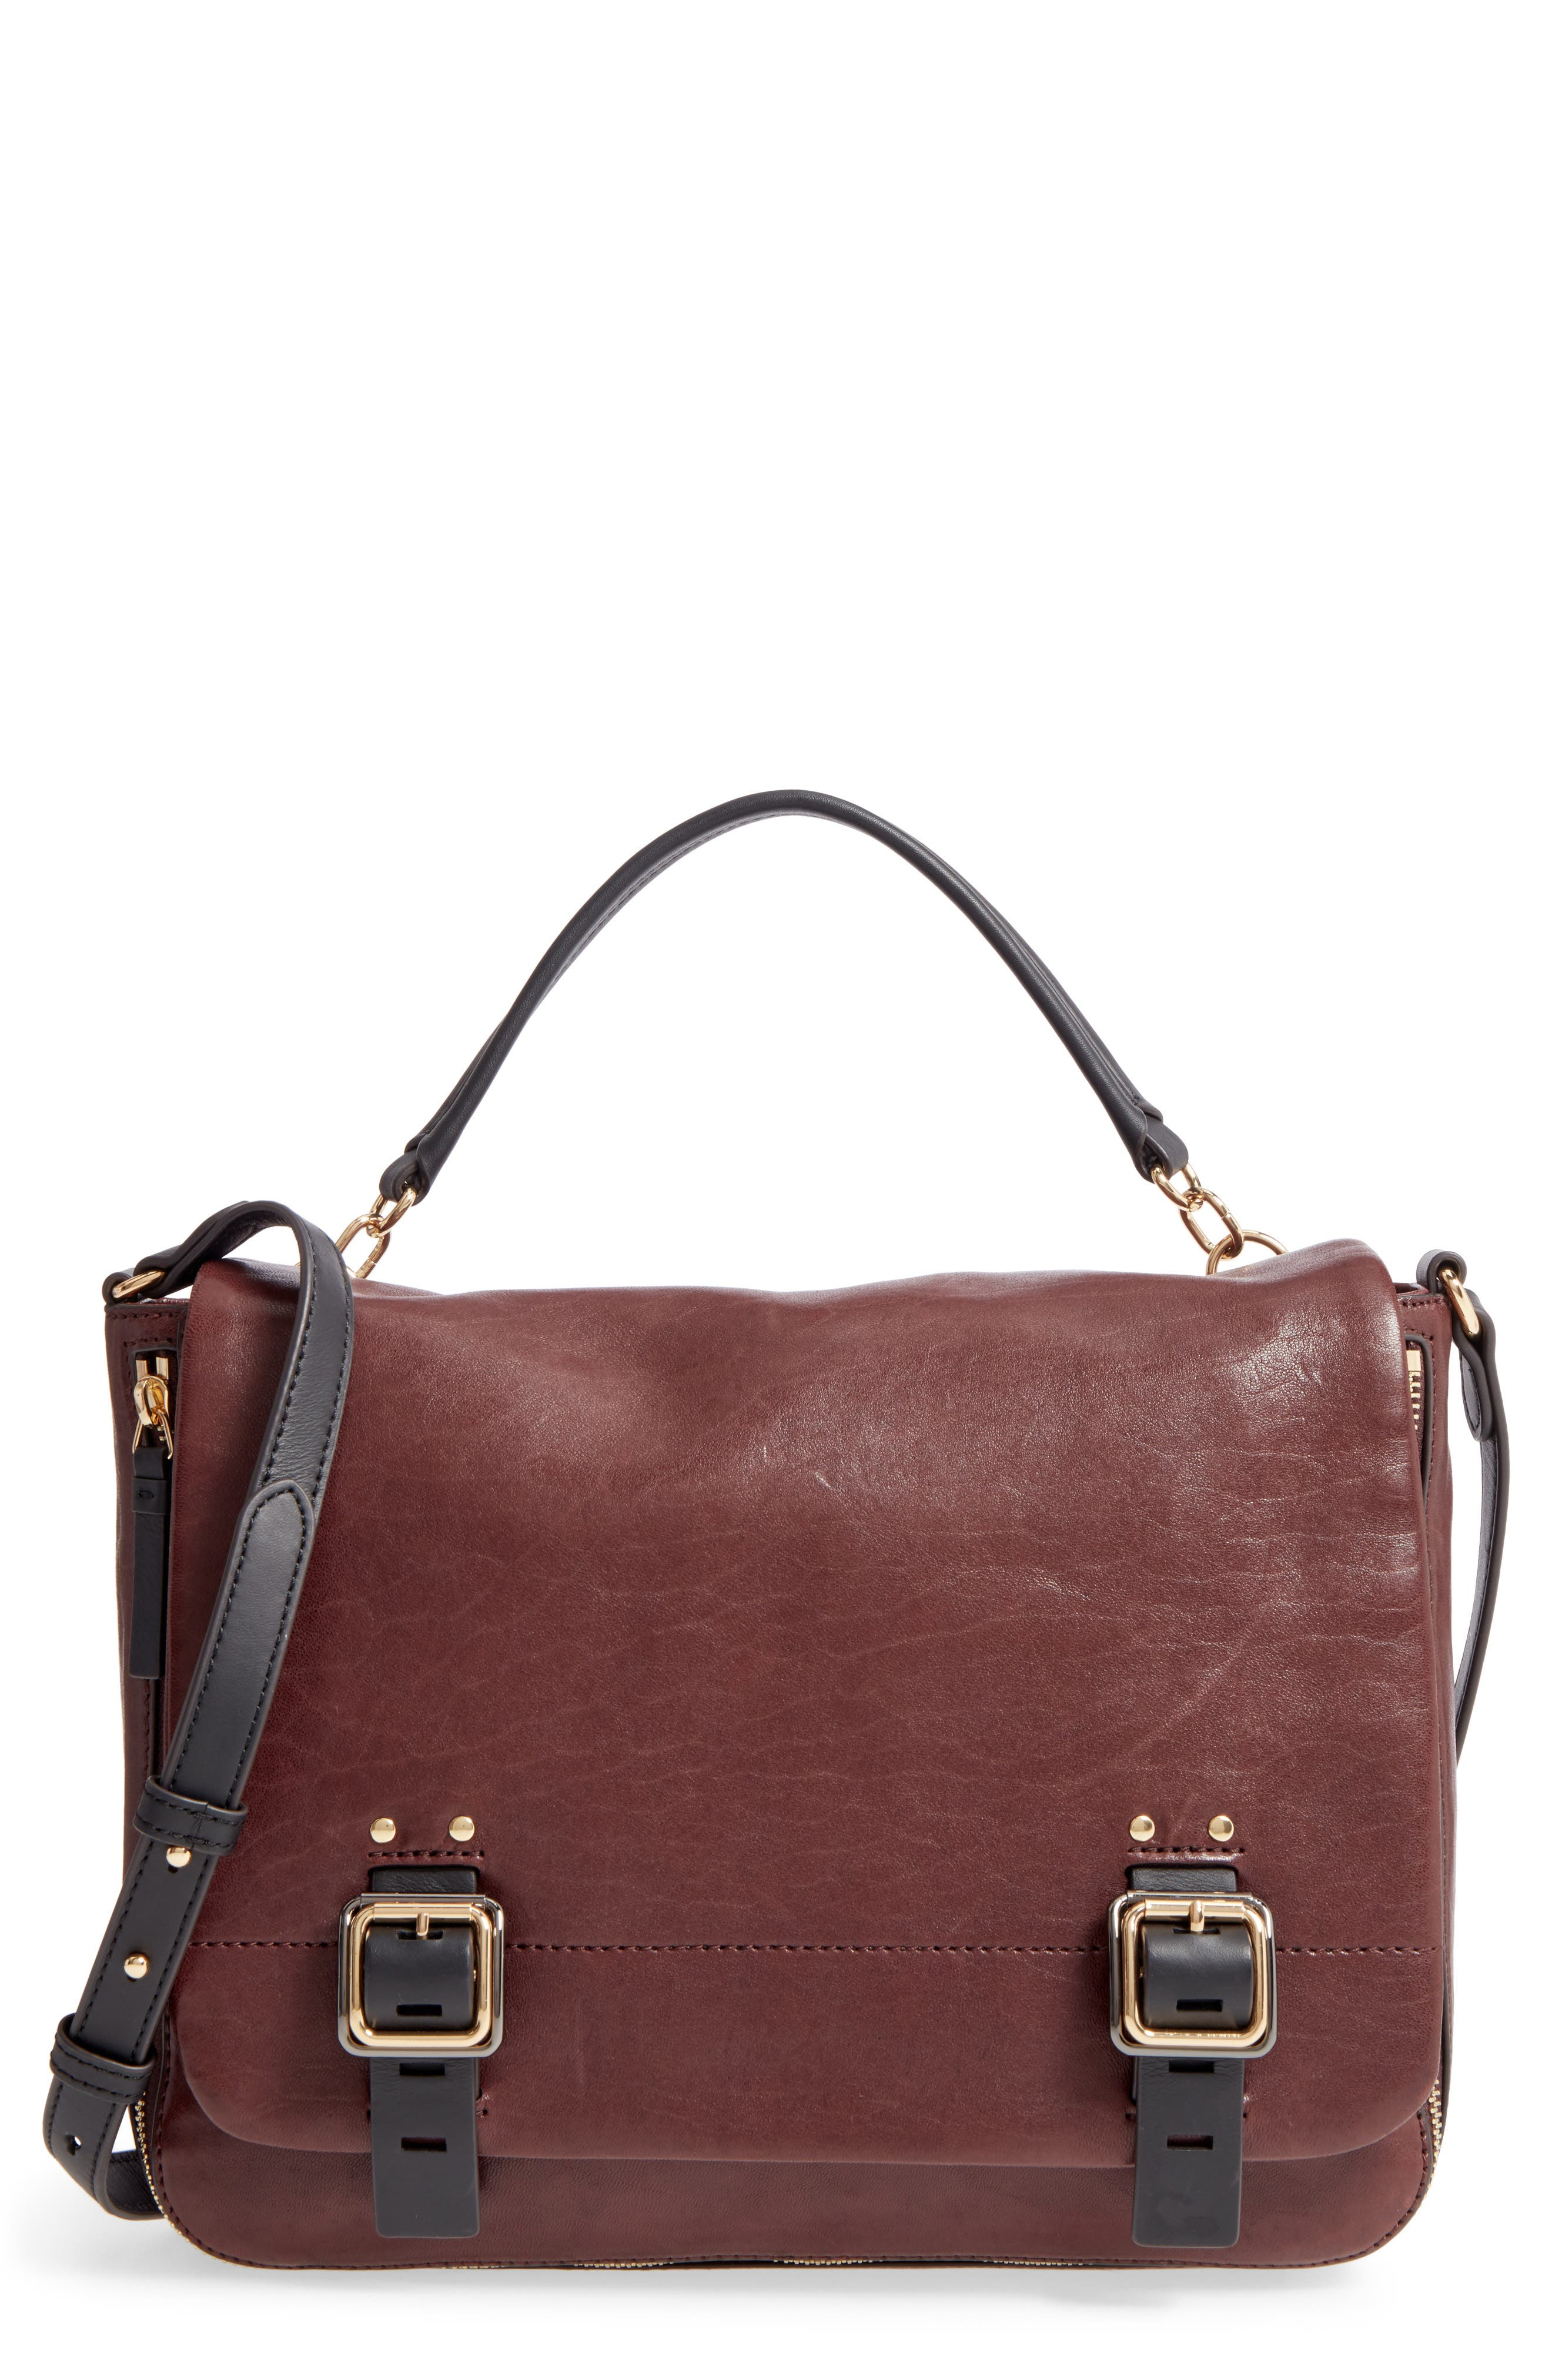 Alternate Image 1 Selected - Vince Camuto Delos Leather Messenger Bag (Nordstrom Exclusive)